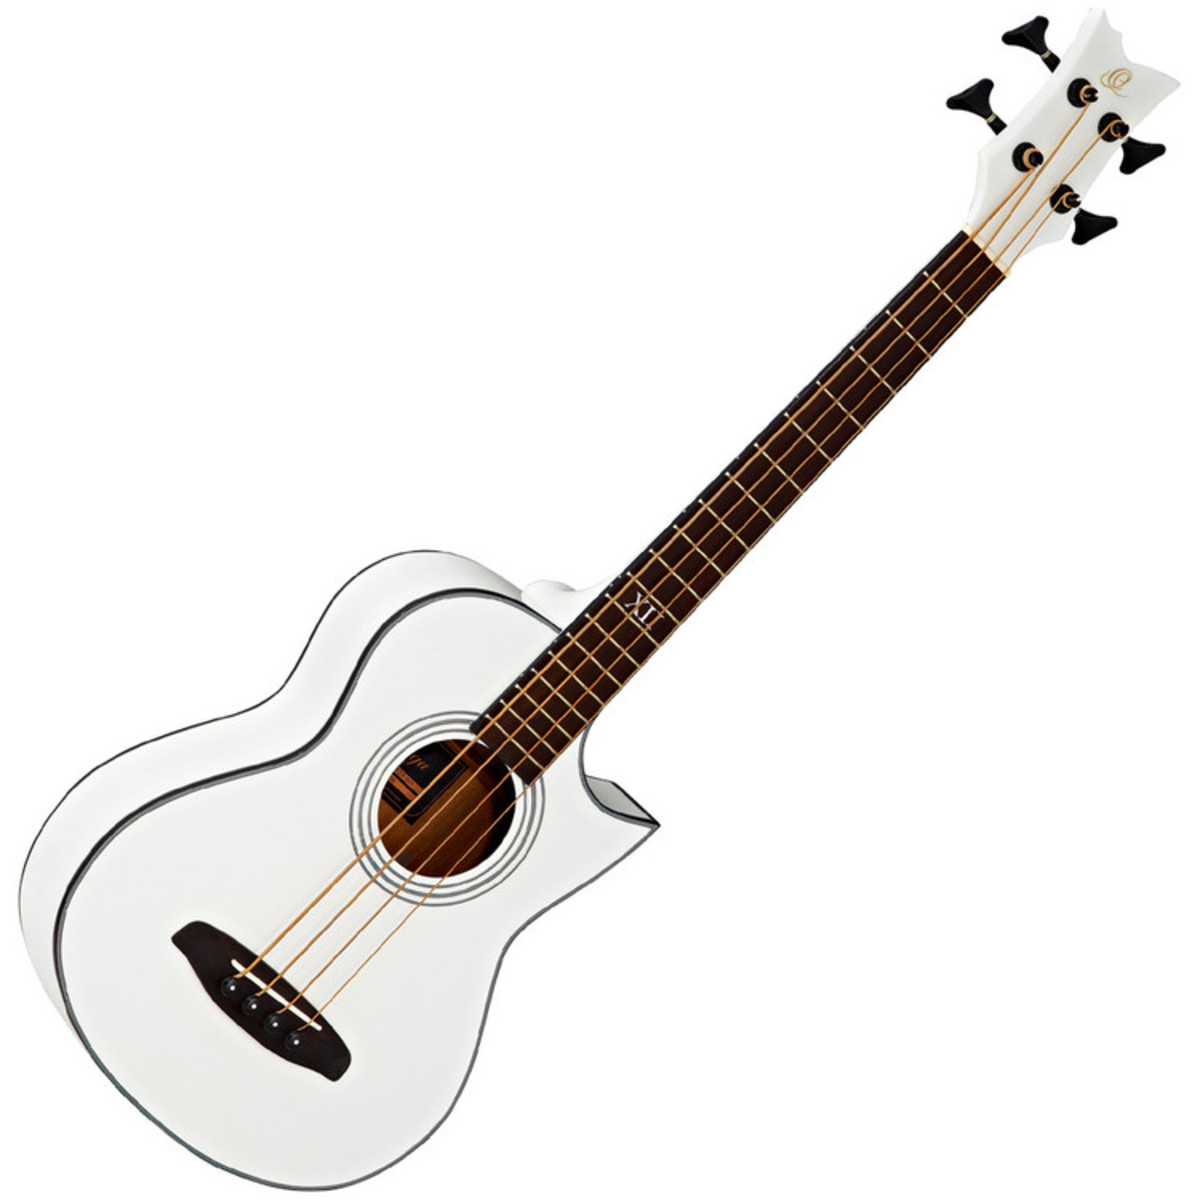 ortega d walker extra short scale electro acoustic bass white at gear4music. Black Bedroom Furniture Sets. Home Design Ideas